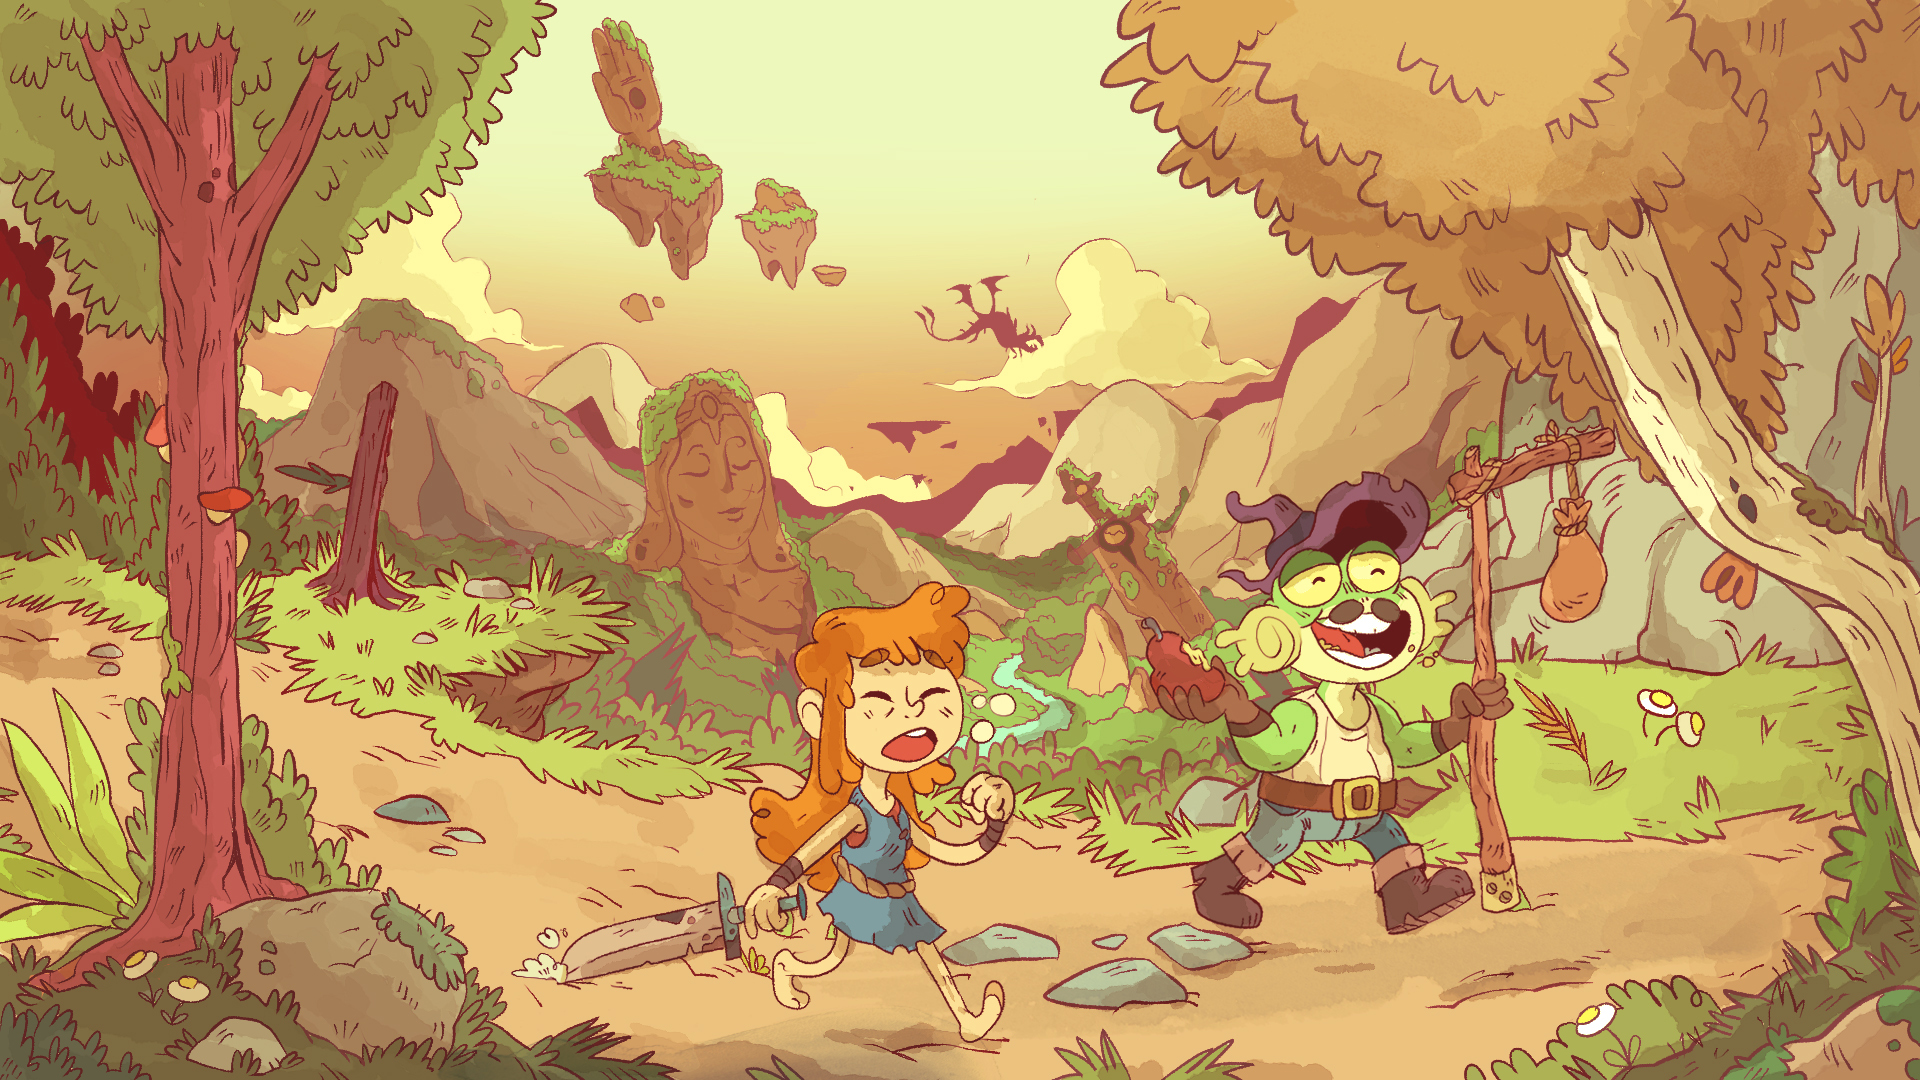 Adventurers on the road